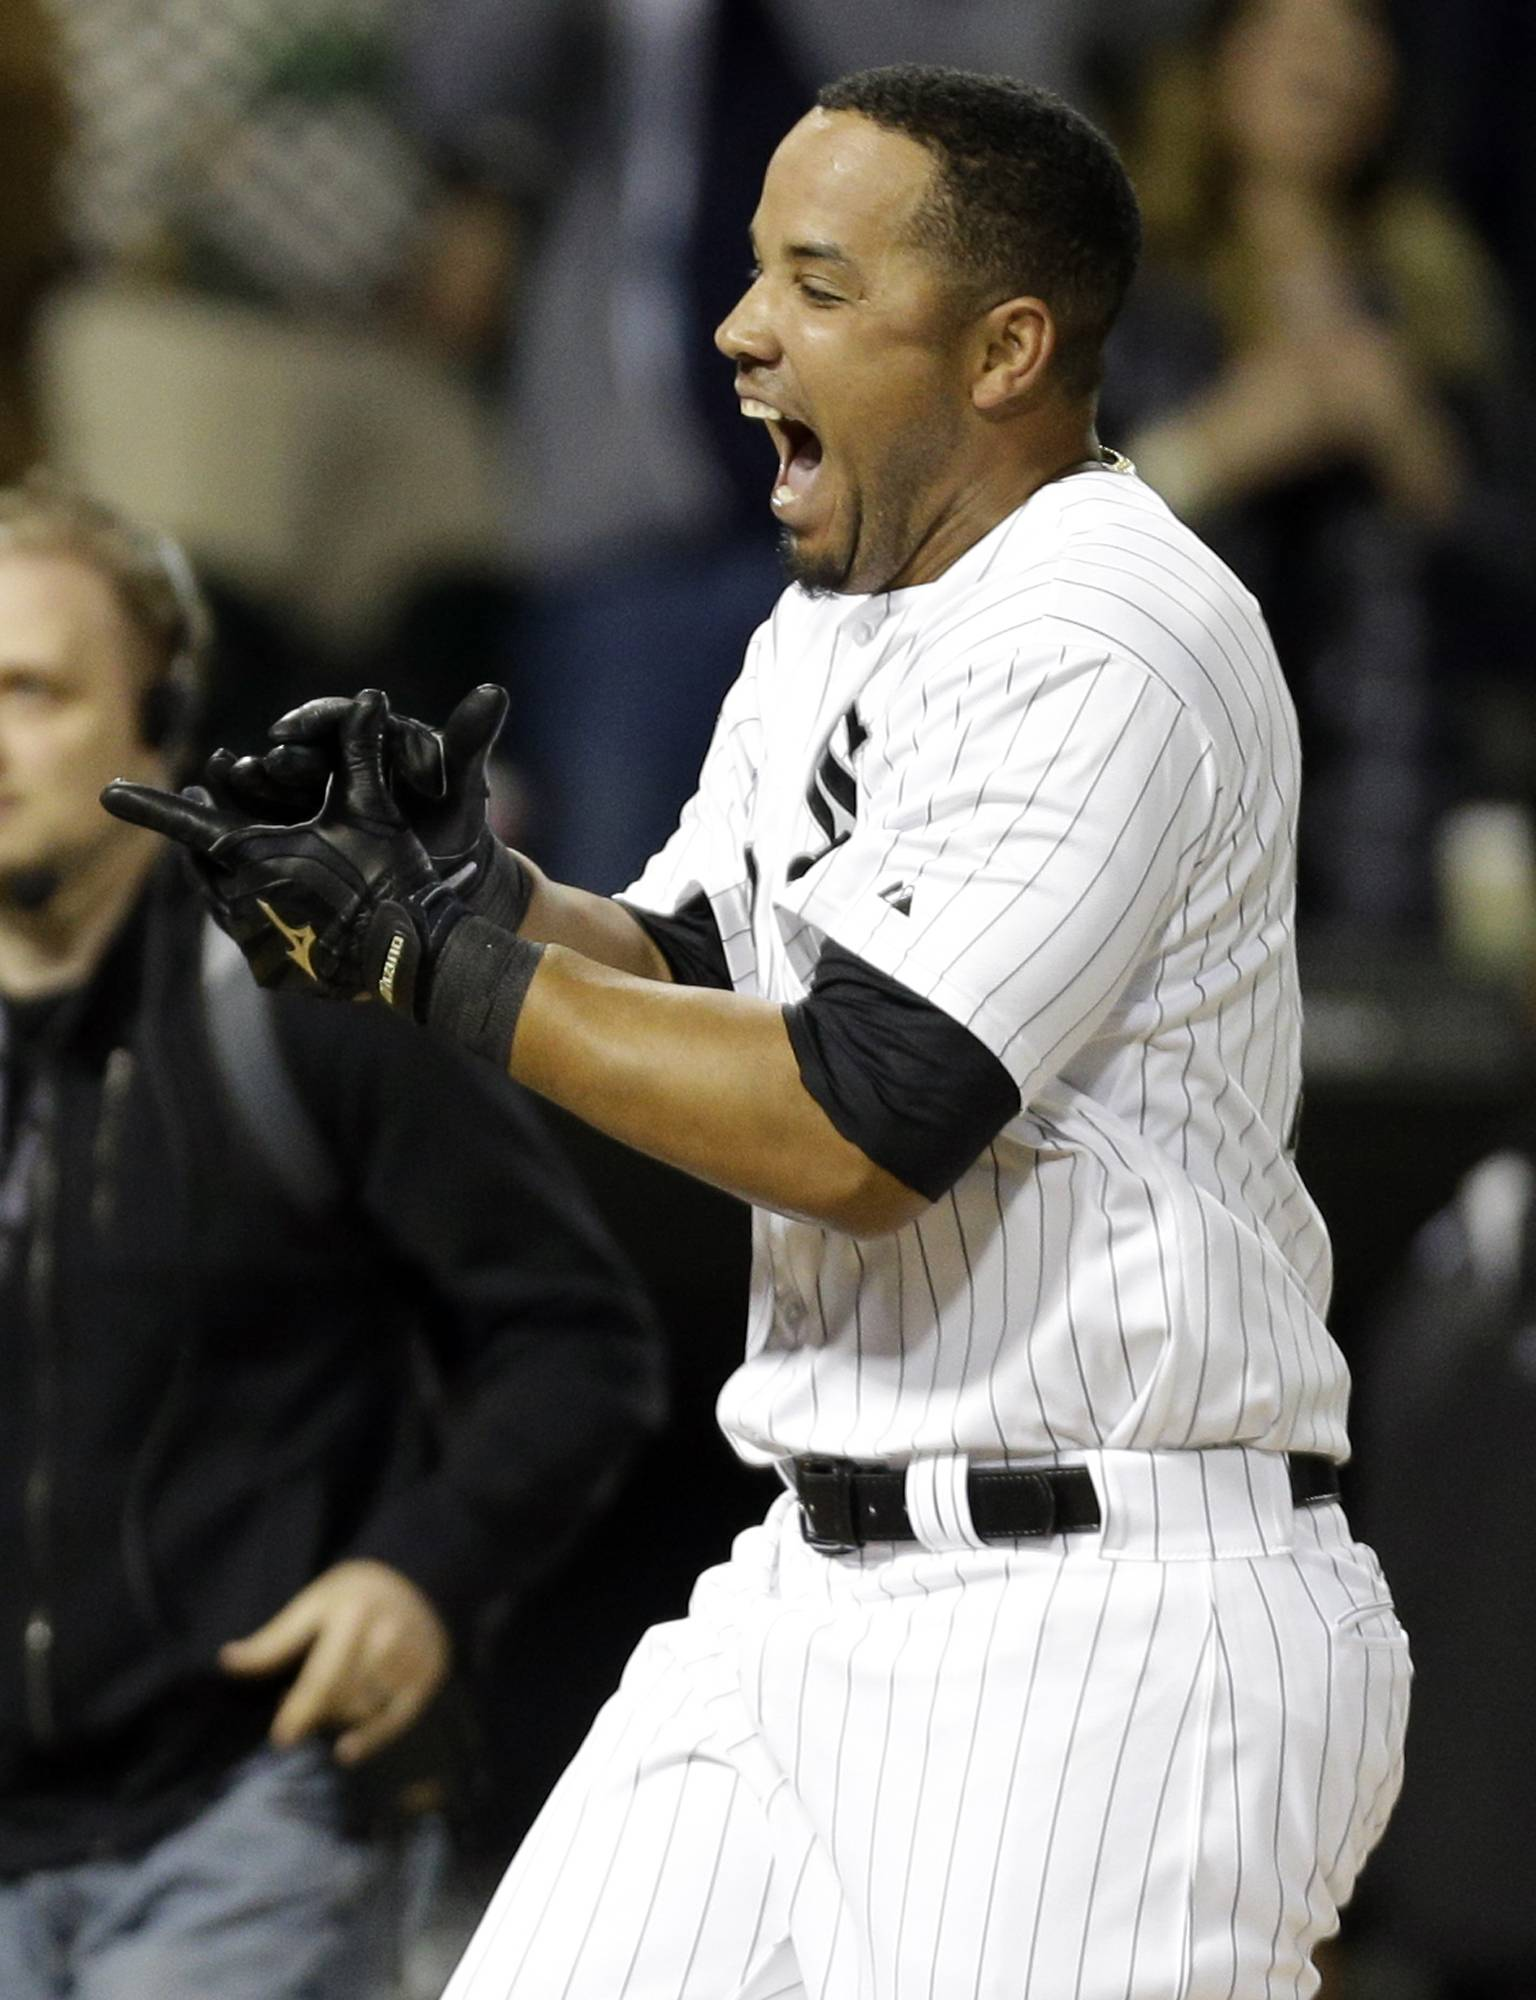 White Sox rookie Jose Abreu leads the majors after hitting his 12th homer of the season Sunday at Cleveland. Scot Gregor advises Cubs pitchers to pepper Abreau with sliders and change-ups on the outside part of the plate.